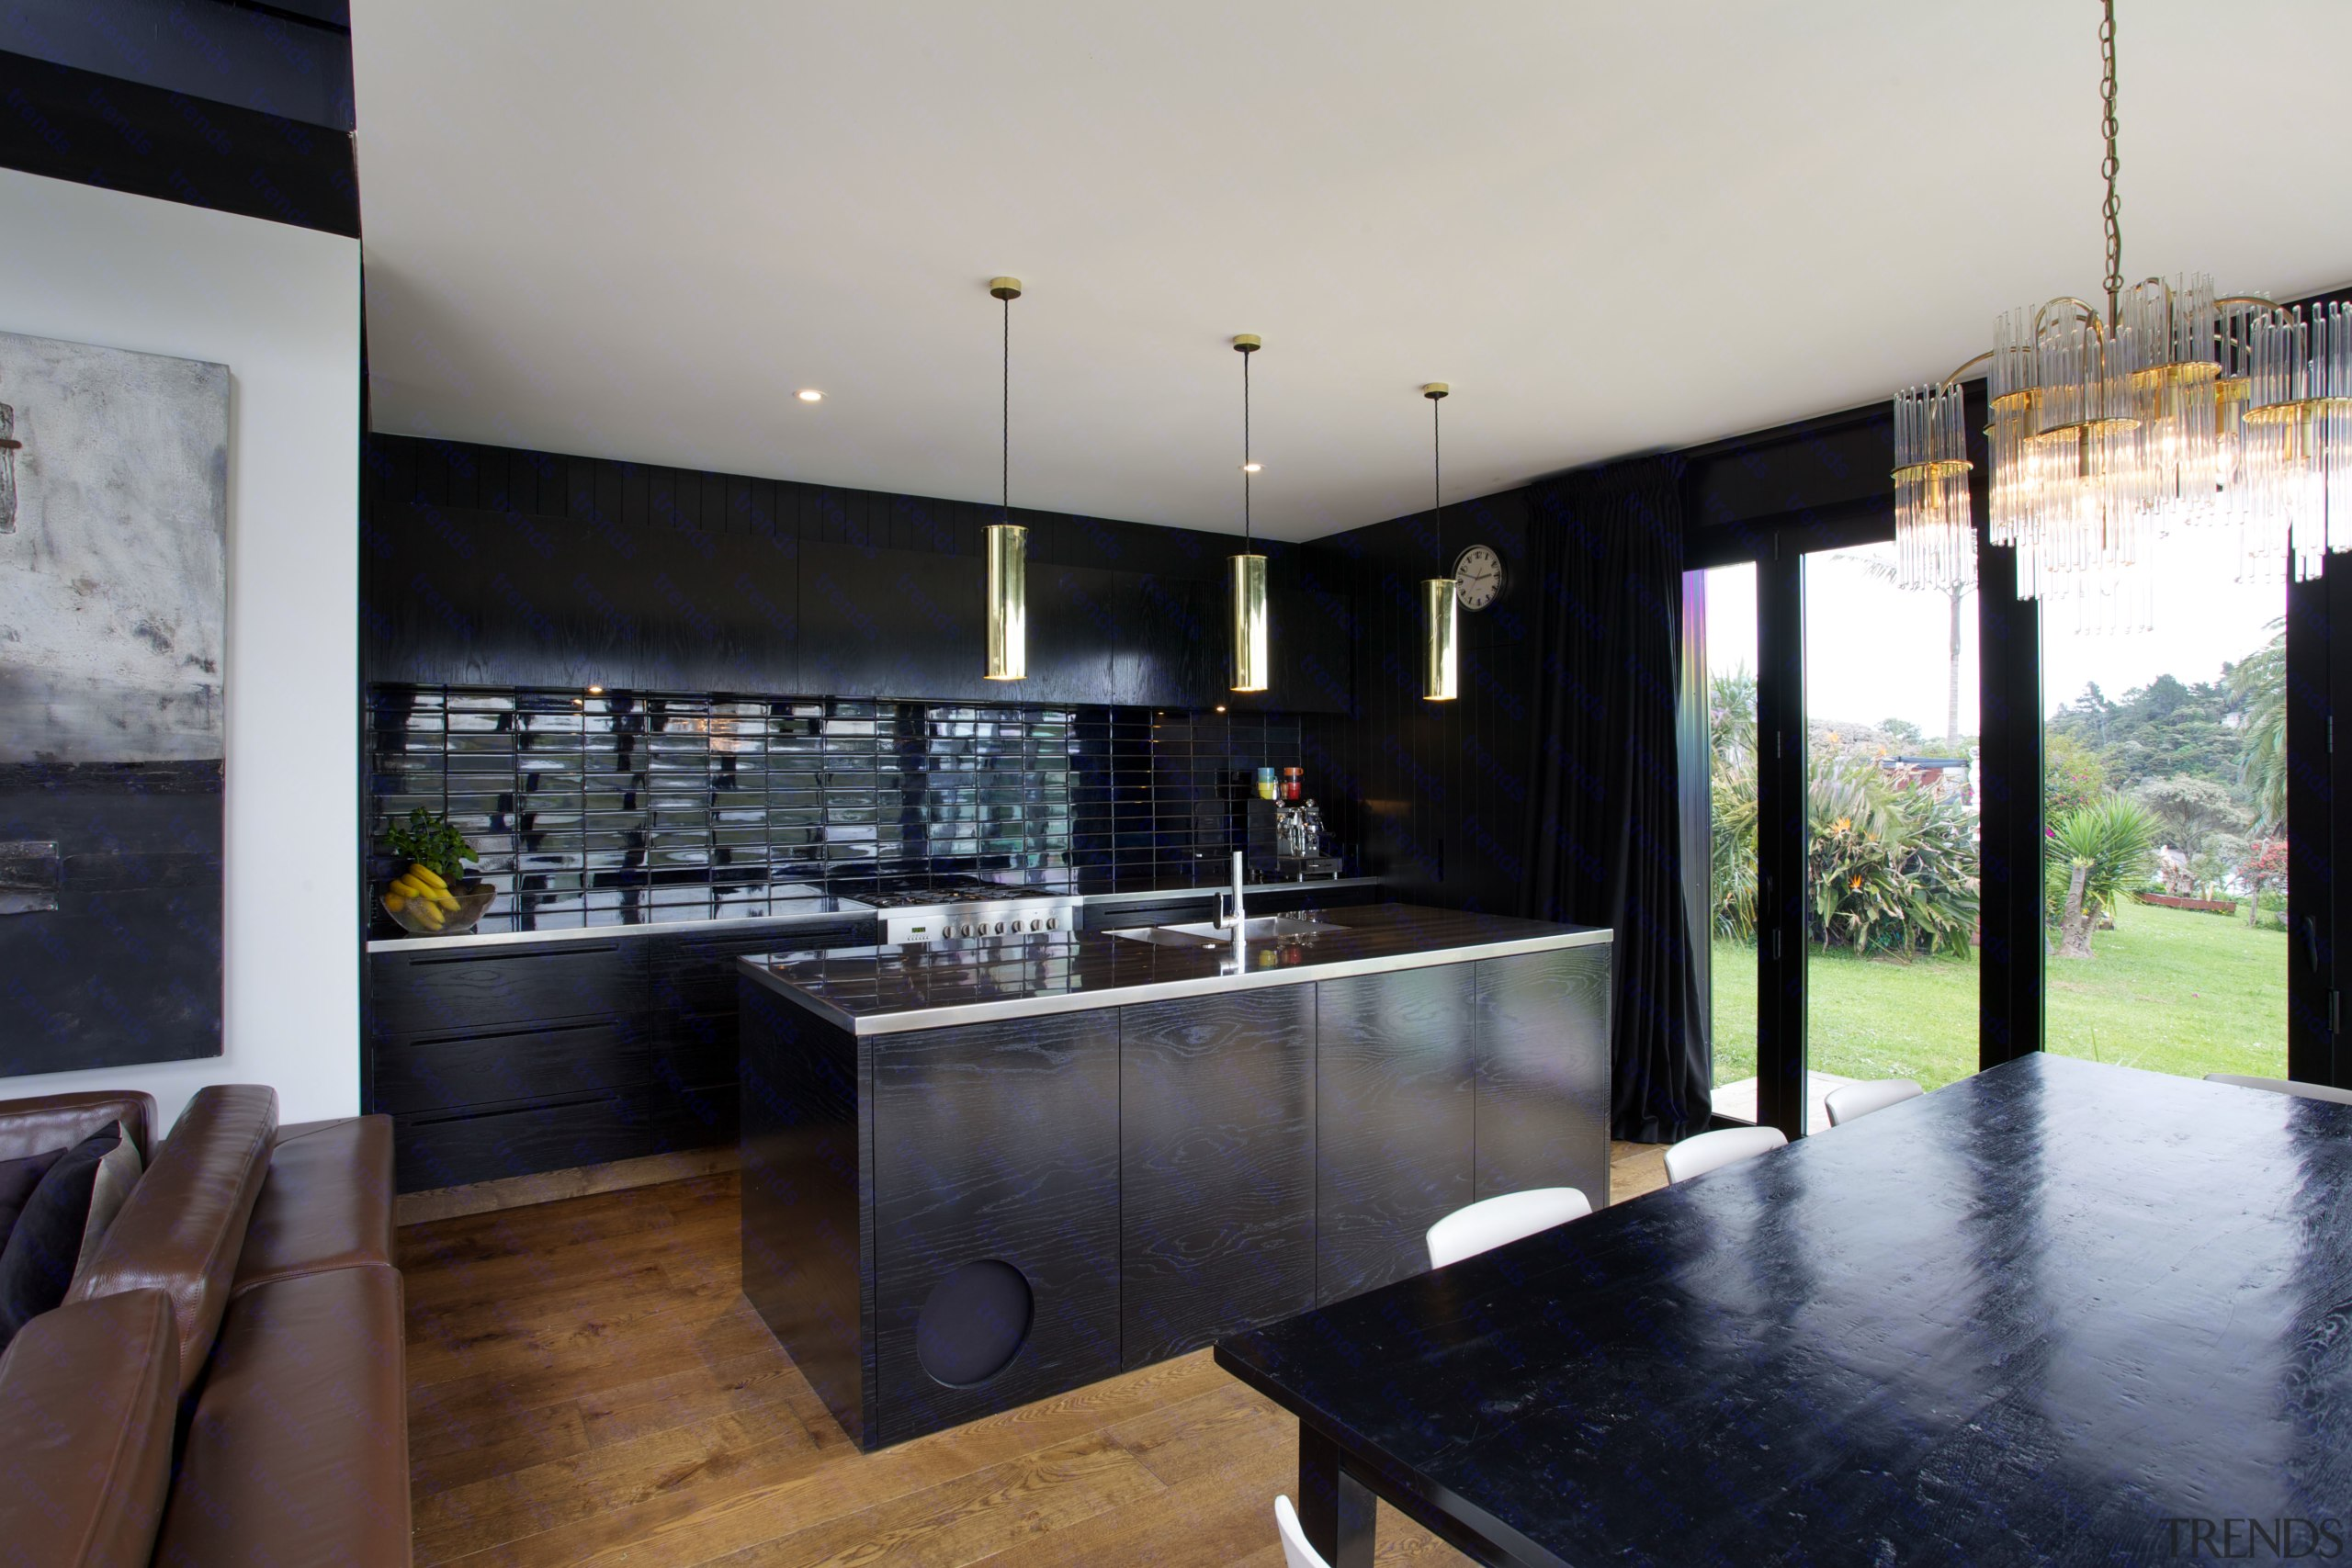 In this new kitchen designed by owner David architecture, countertop, house, interior design, kitchen, property, real estate, gray, black